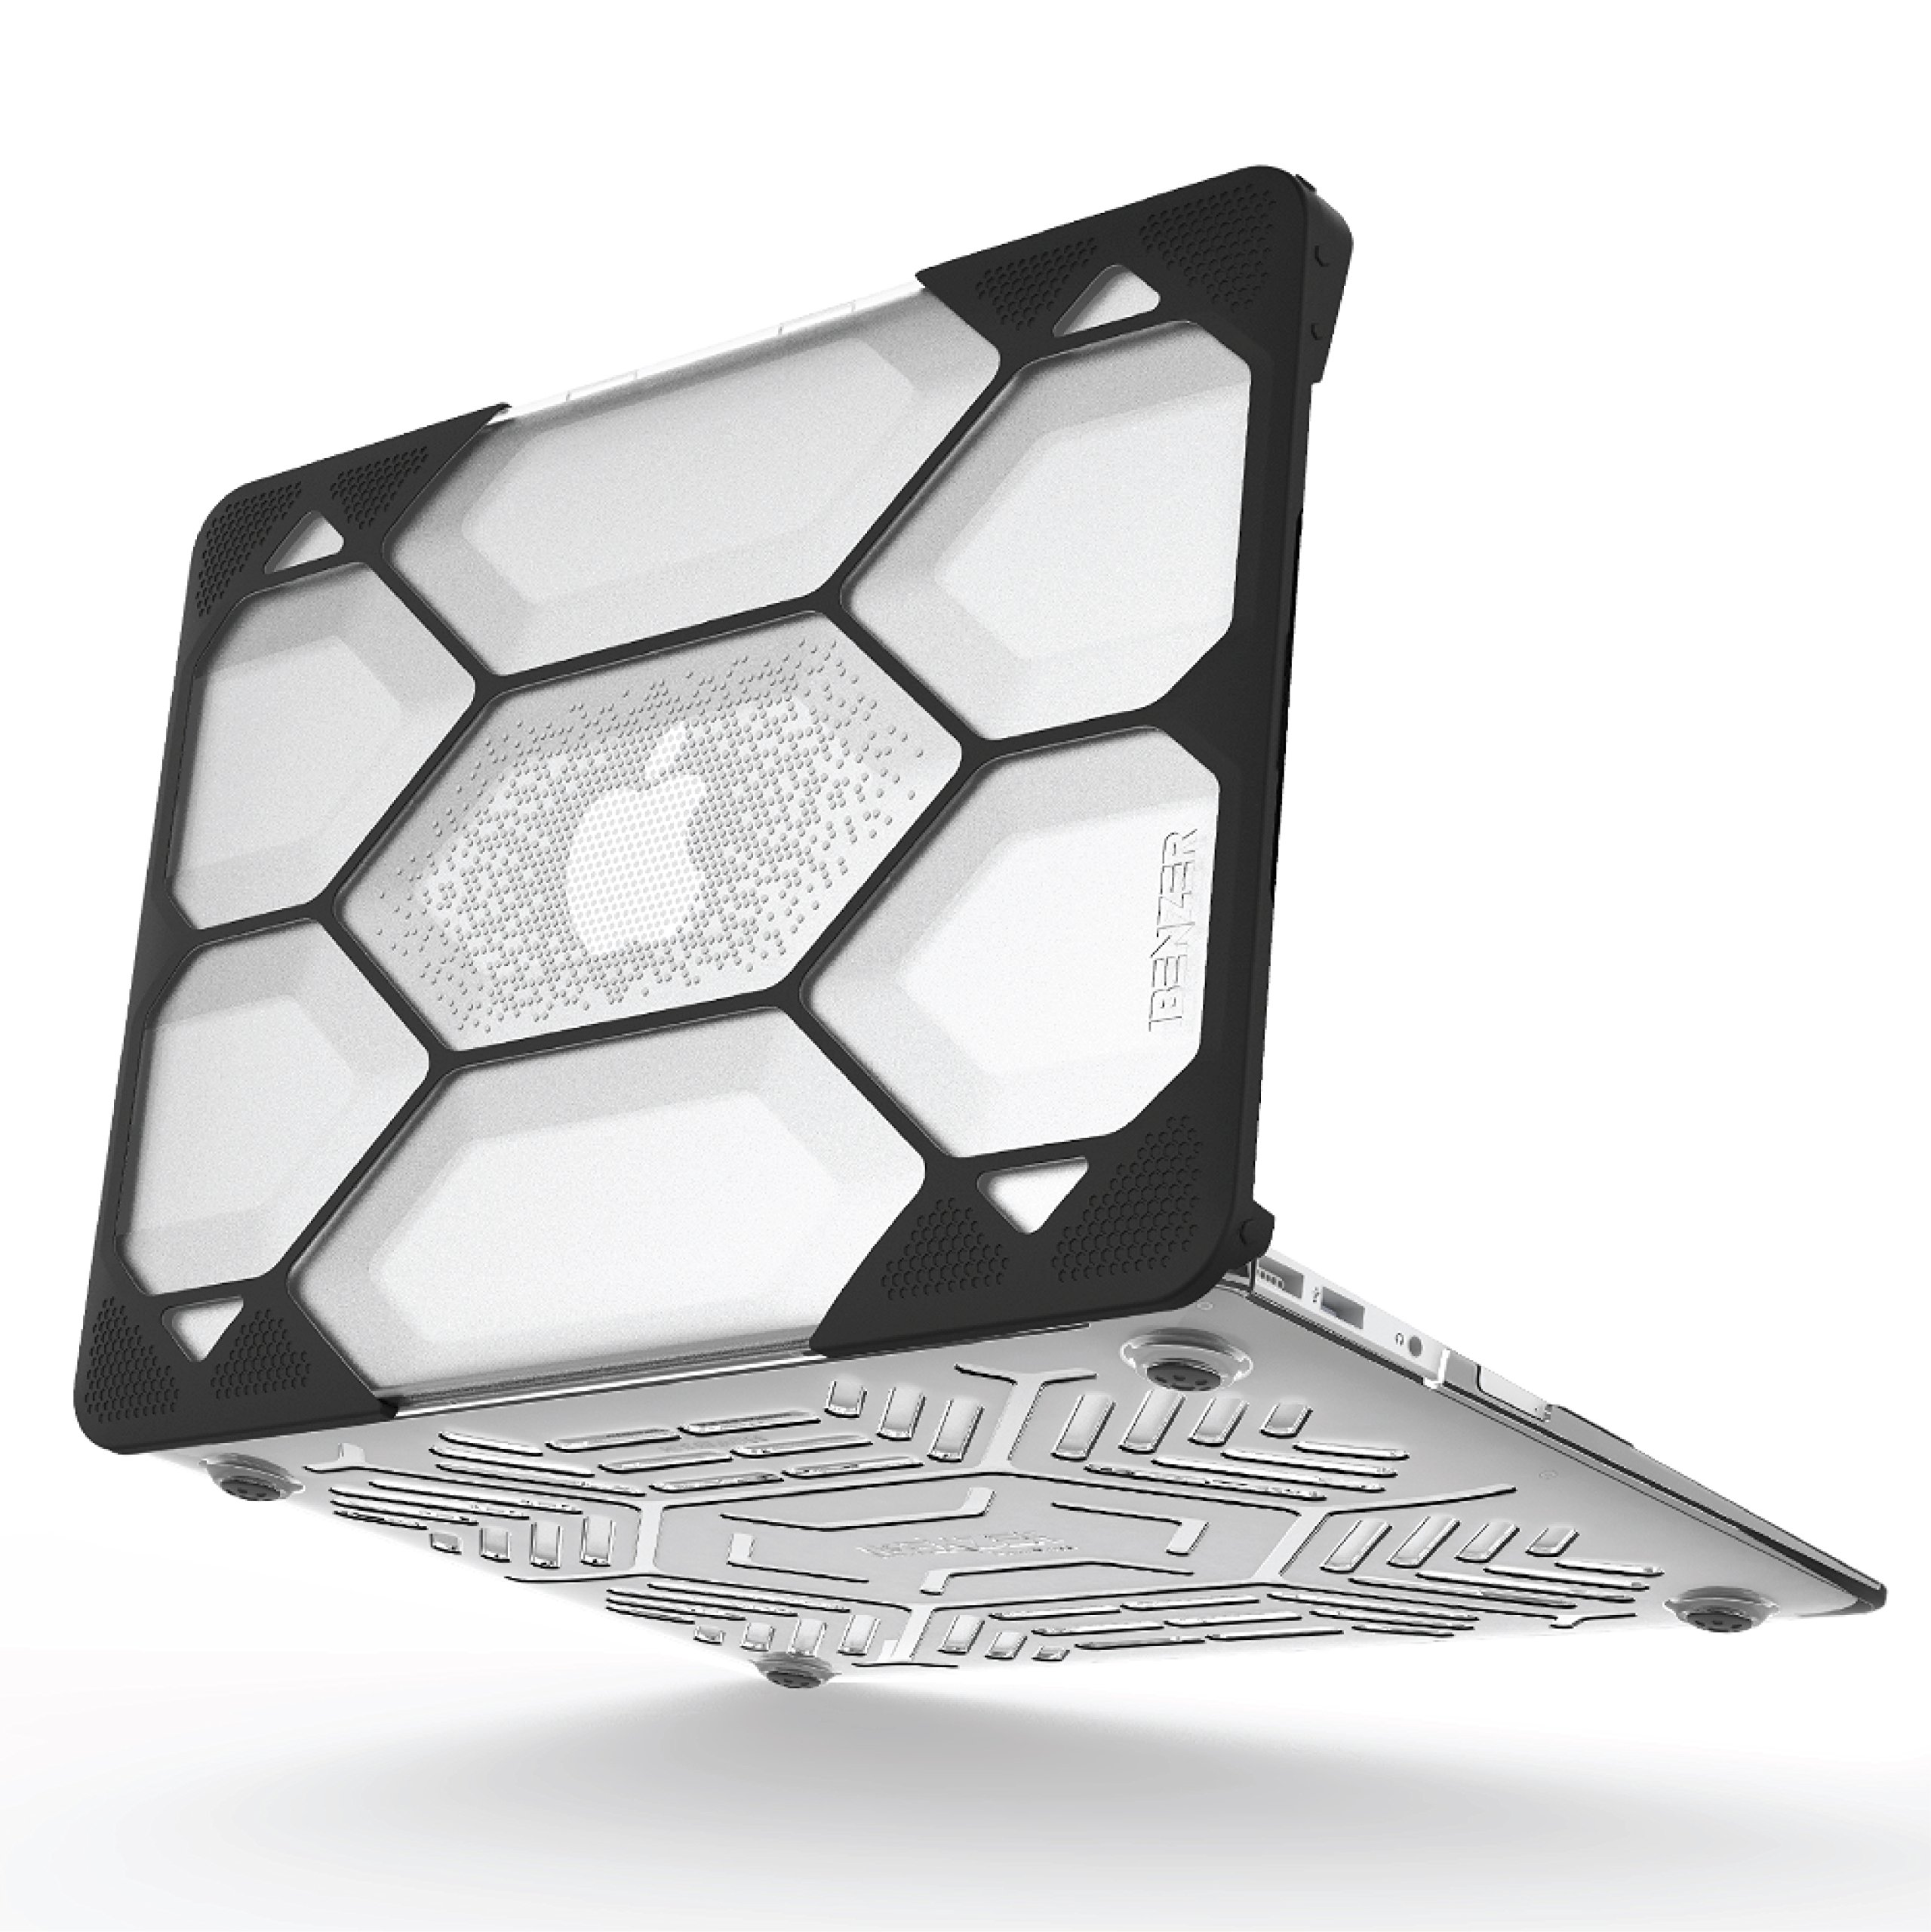 iBenzer Hexpact Dual Layer Design Full-body Rugged Protective Case for MacBook Air 11 A1370/A1465 Clear (LC-HPE-A11CL)